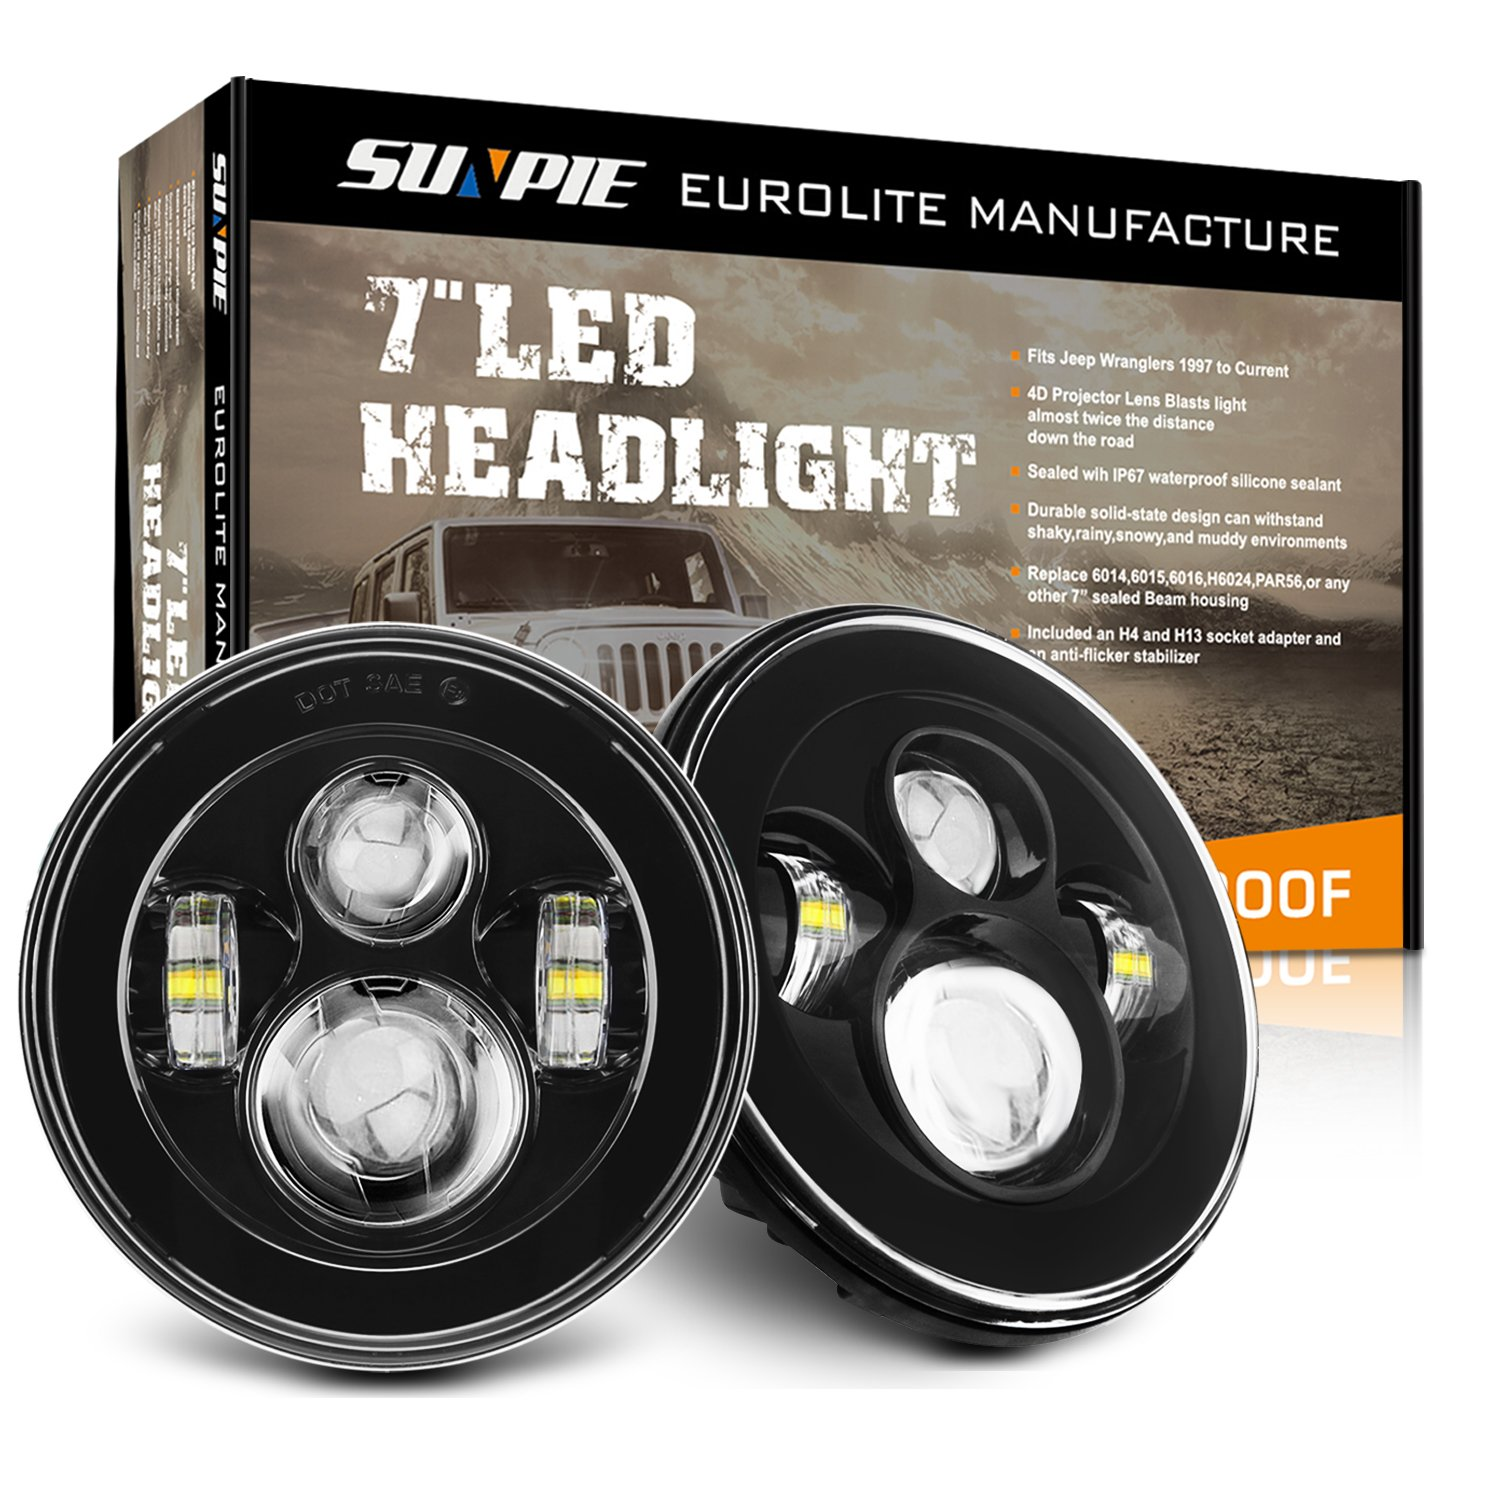 Sunpie Black Style LED Projection Headlight Kit for Jeep Applications Jk TJ LJ